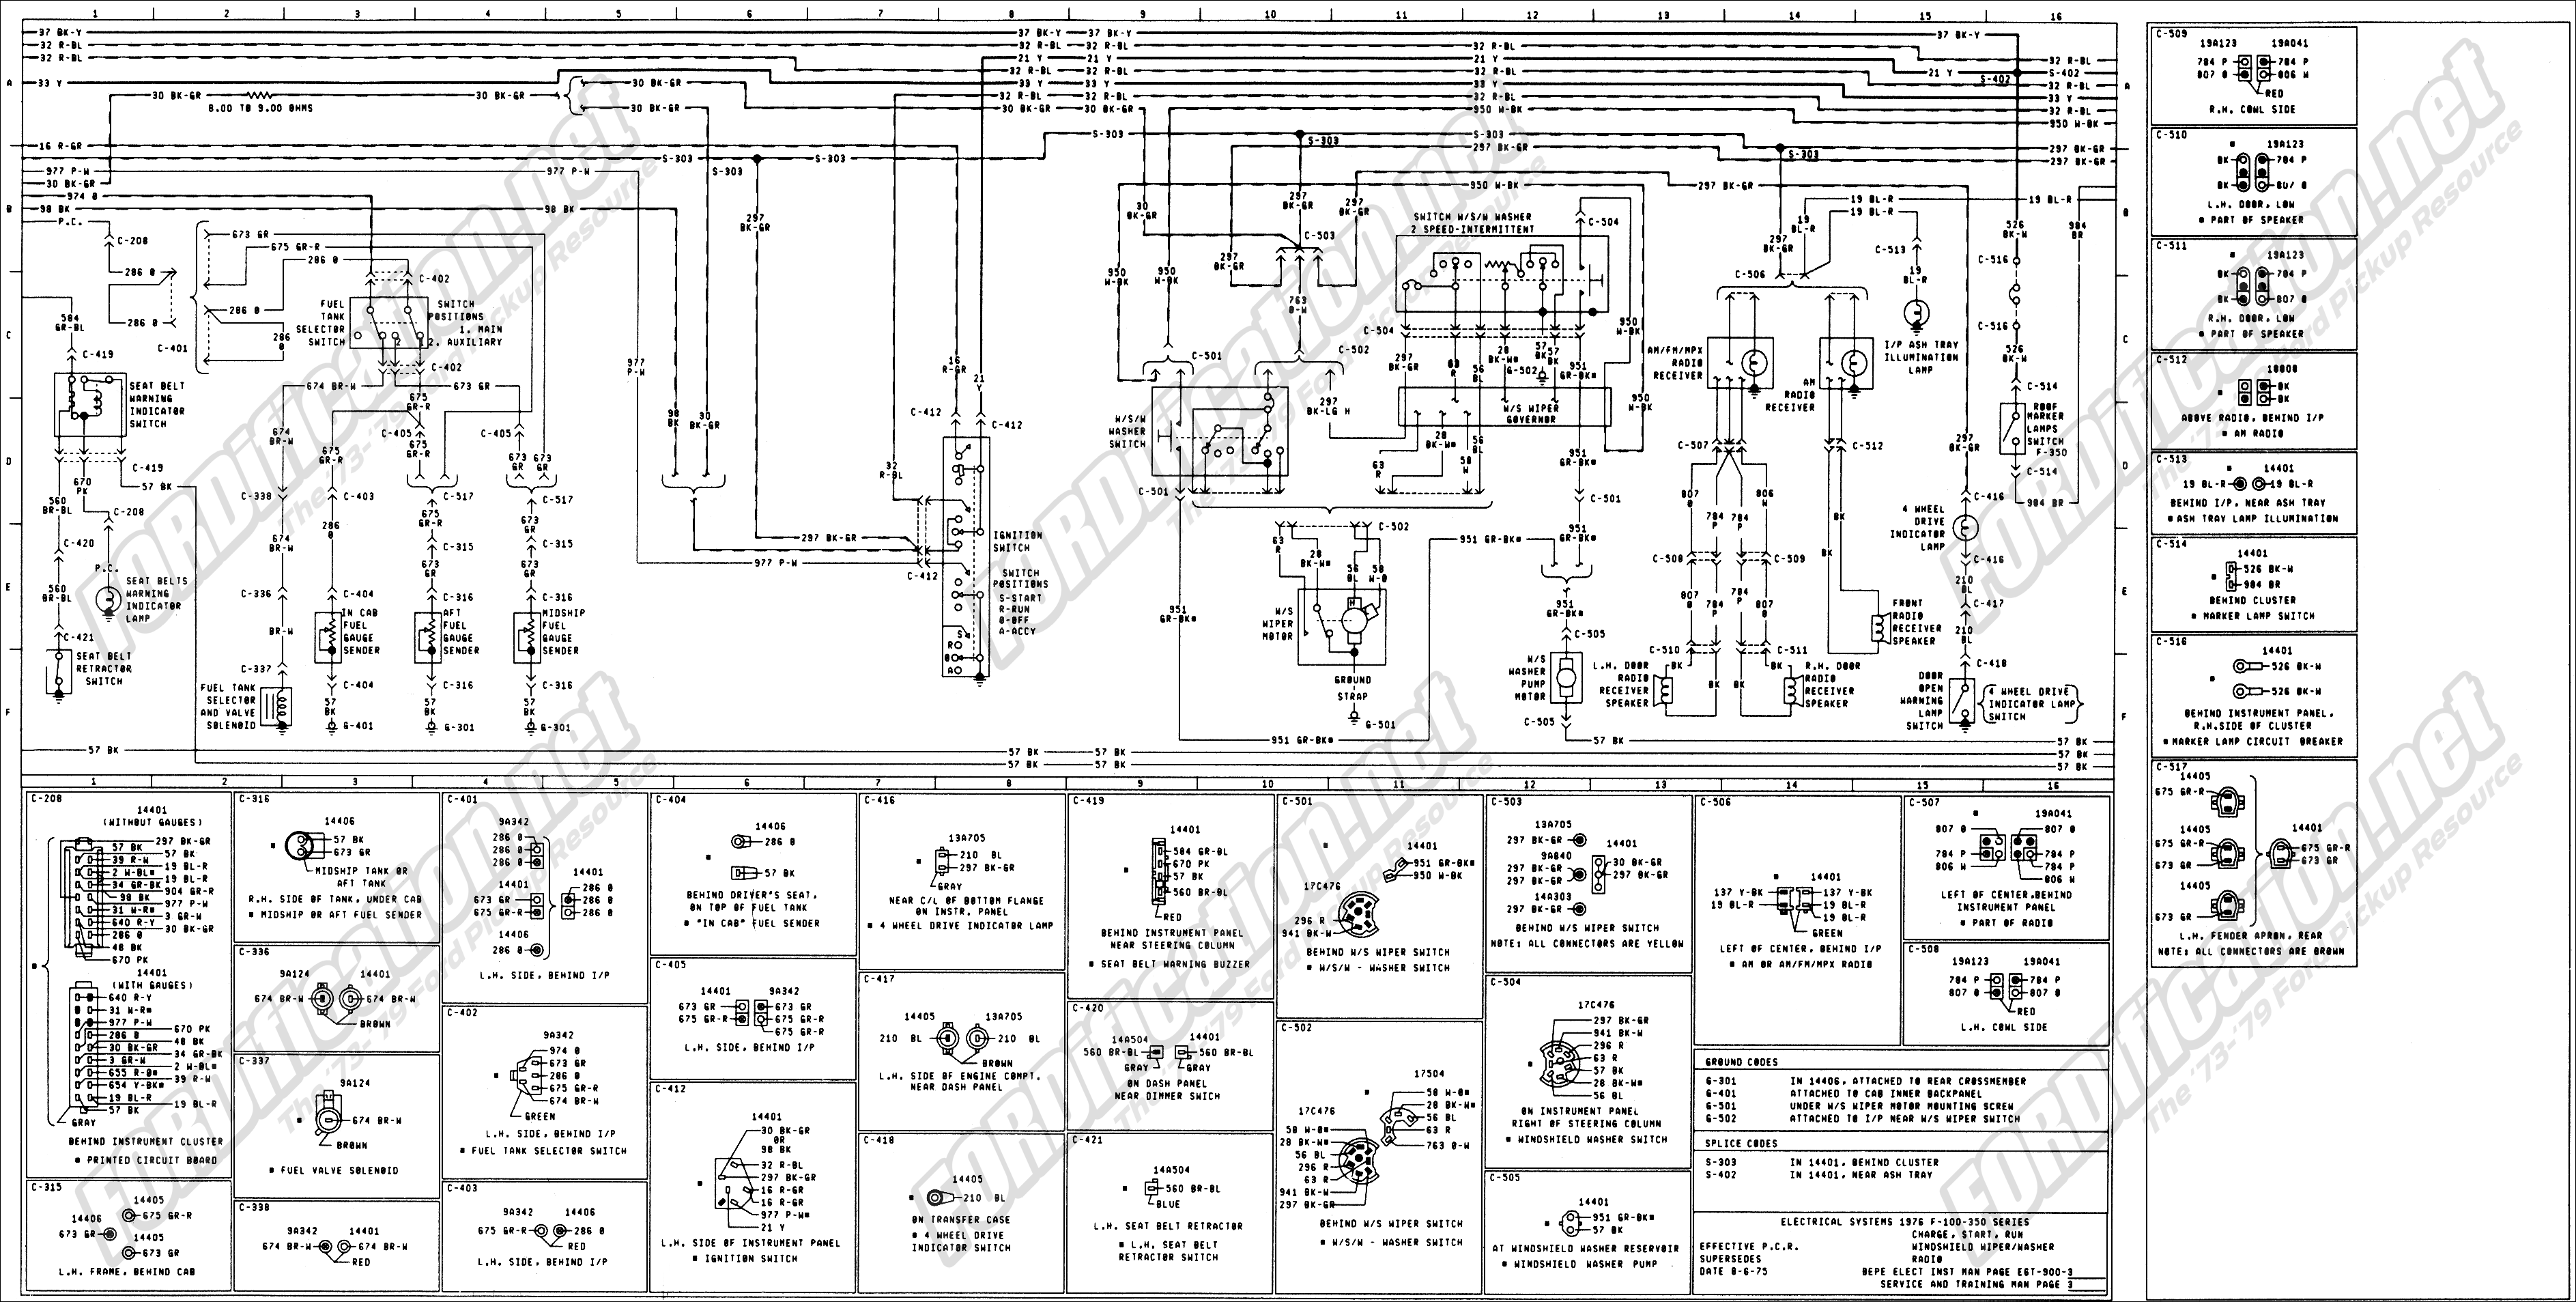 1973 1979 ford truck wiring diagrams schematics fordification net rh fordification net 2005 f150 wiring schematic f150 wiring schematic 1991